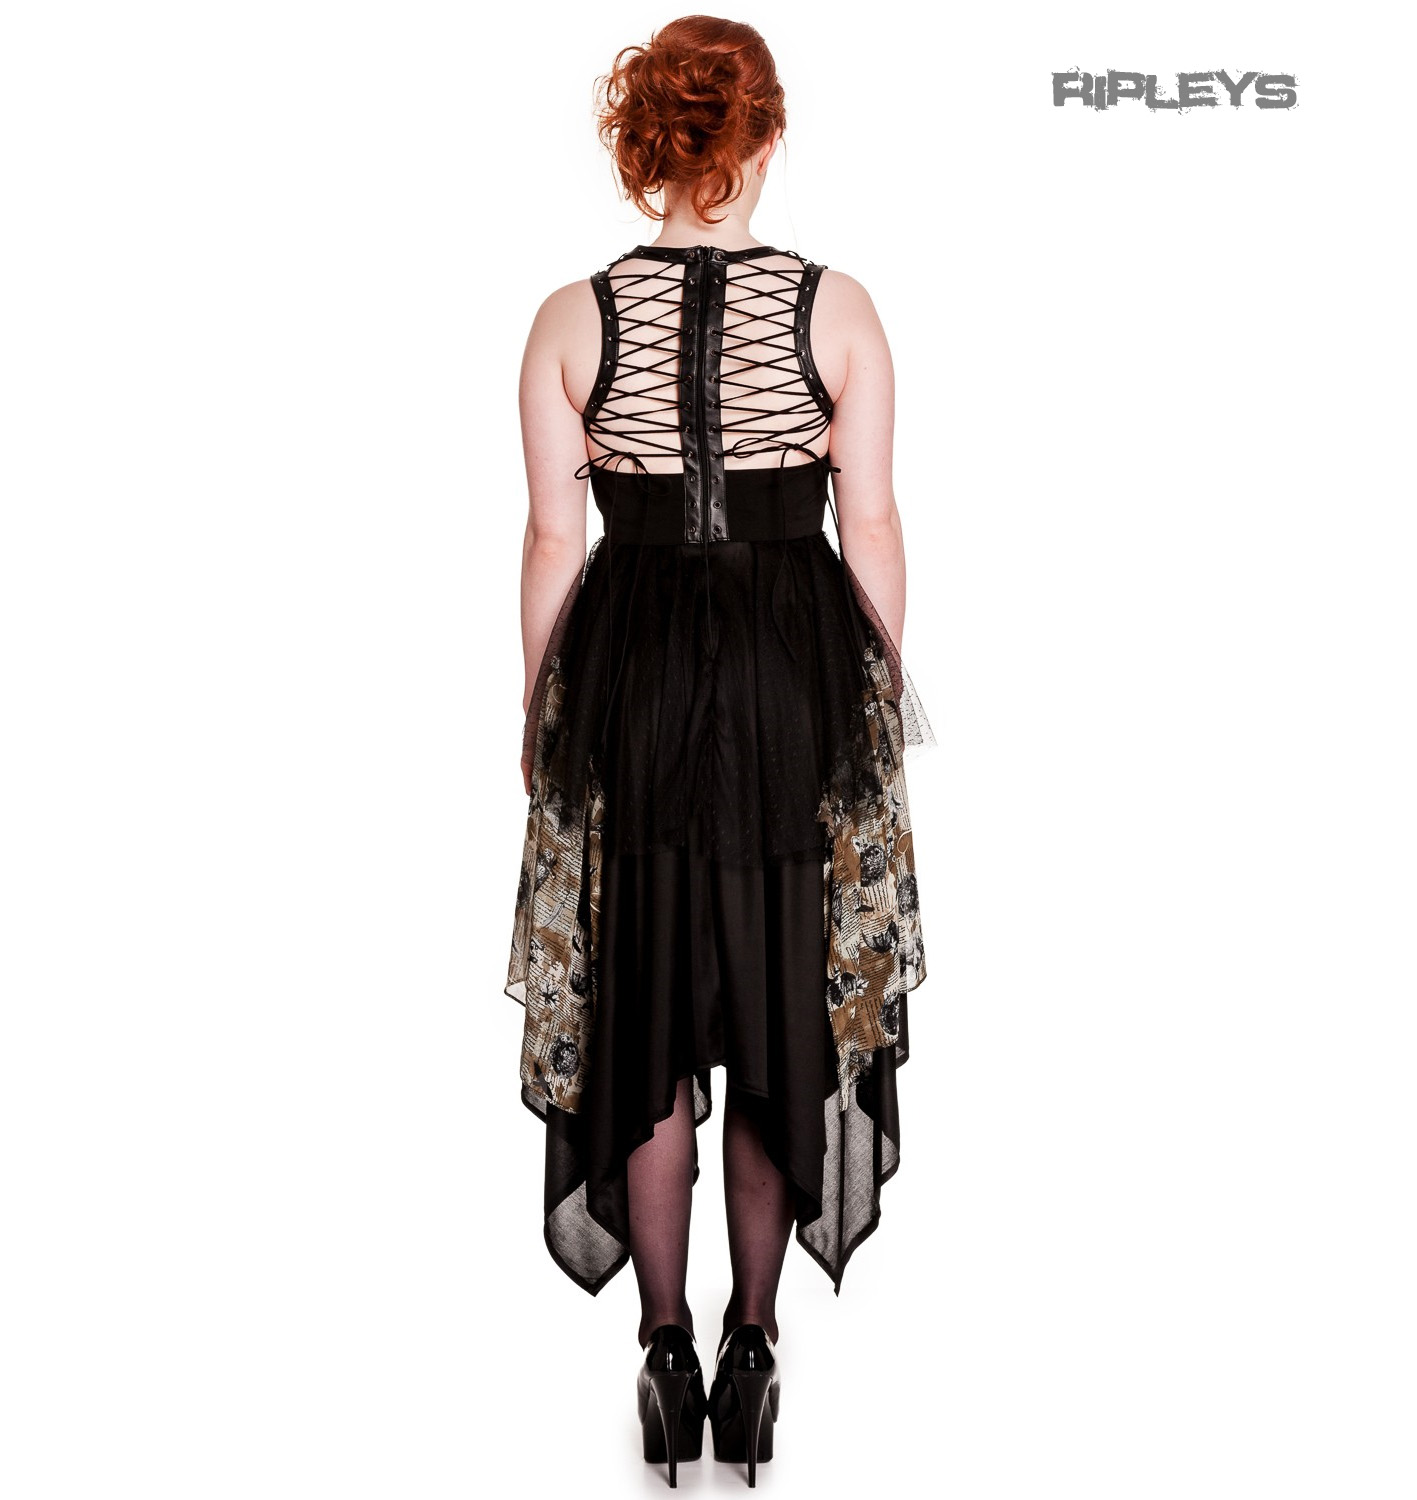 Hell-Bunny-Spin-Doctor-Goth-Black-Dress-ECLIPSE-Grunge-Steampunk-All-Sizes thumbnail 8